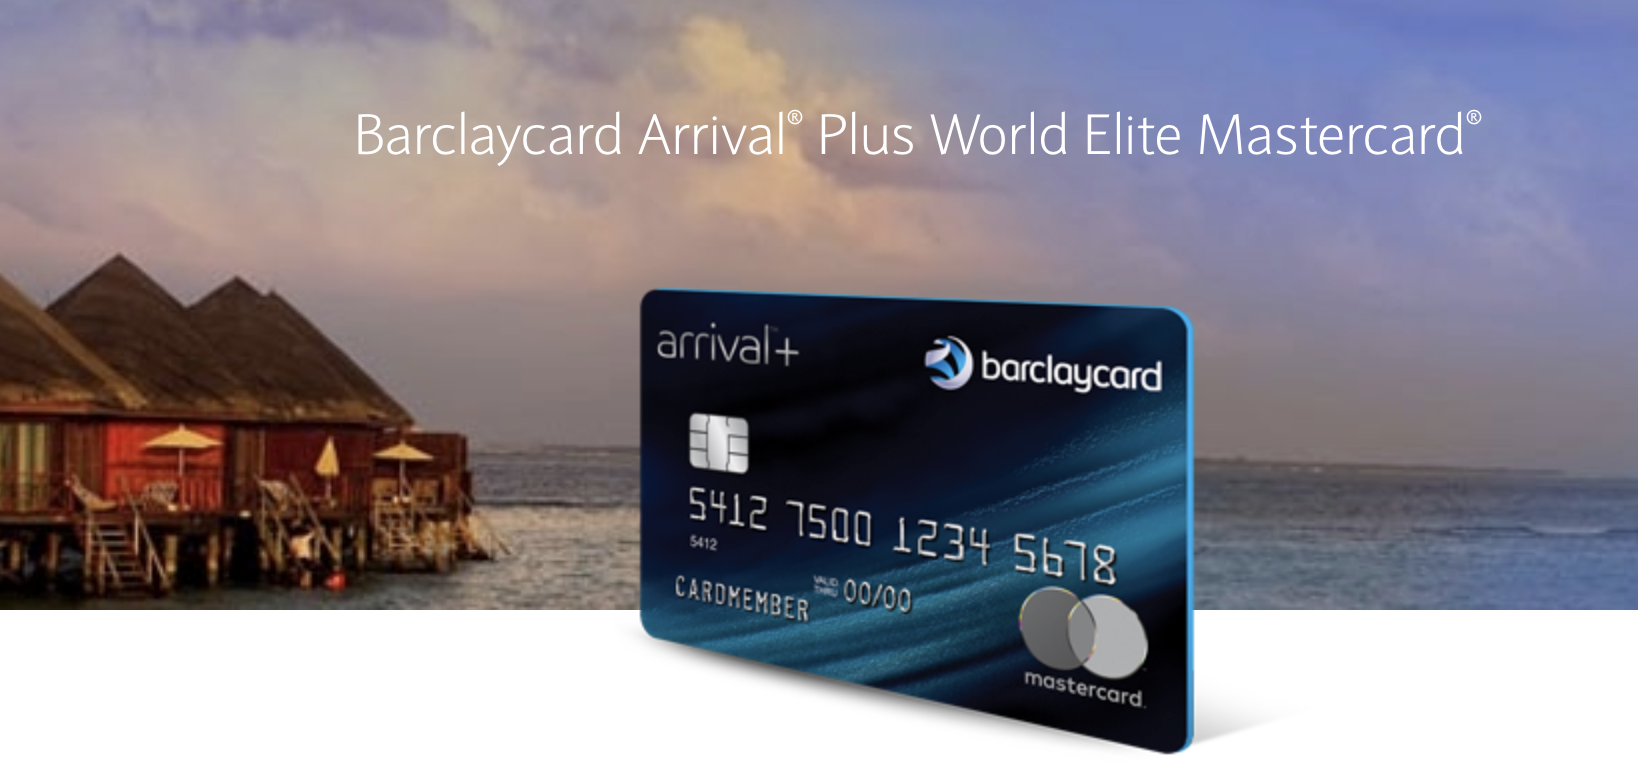 Barclaycard Comparison Arrival Plus or Arrival Premier